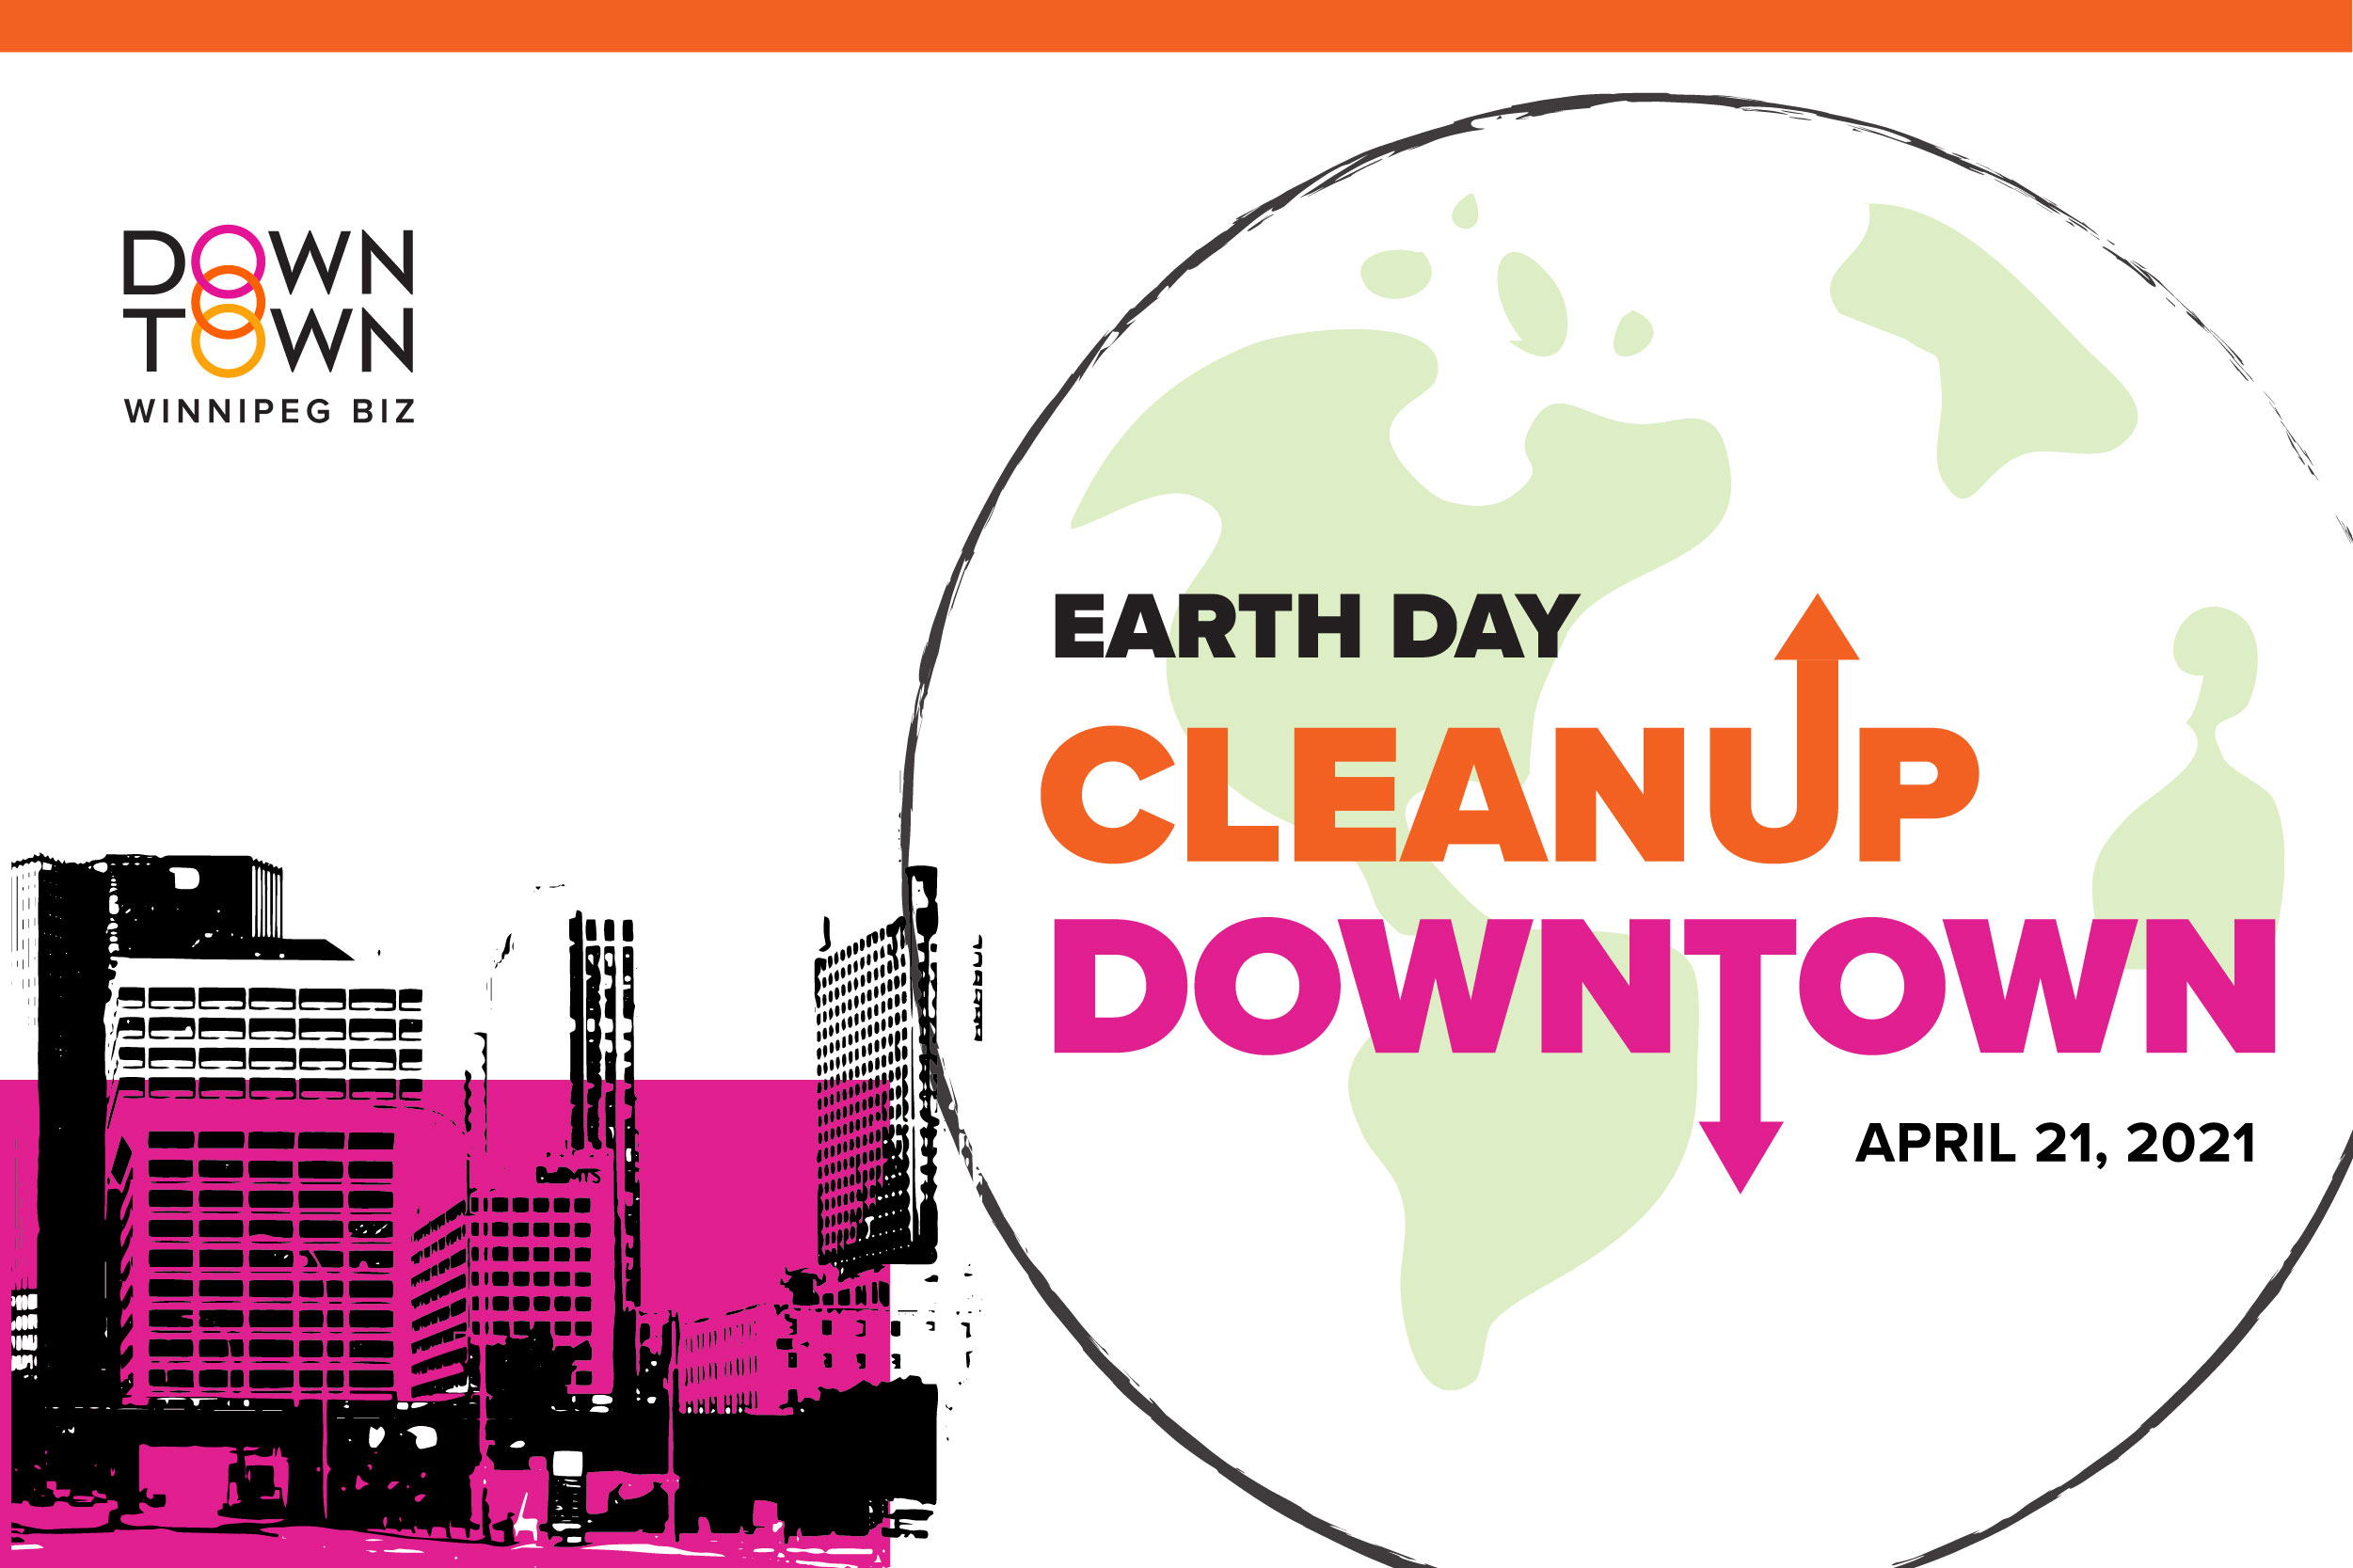 Earth Day CleanUp Downtown